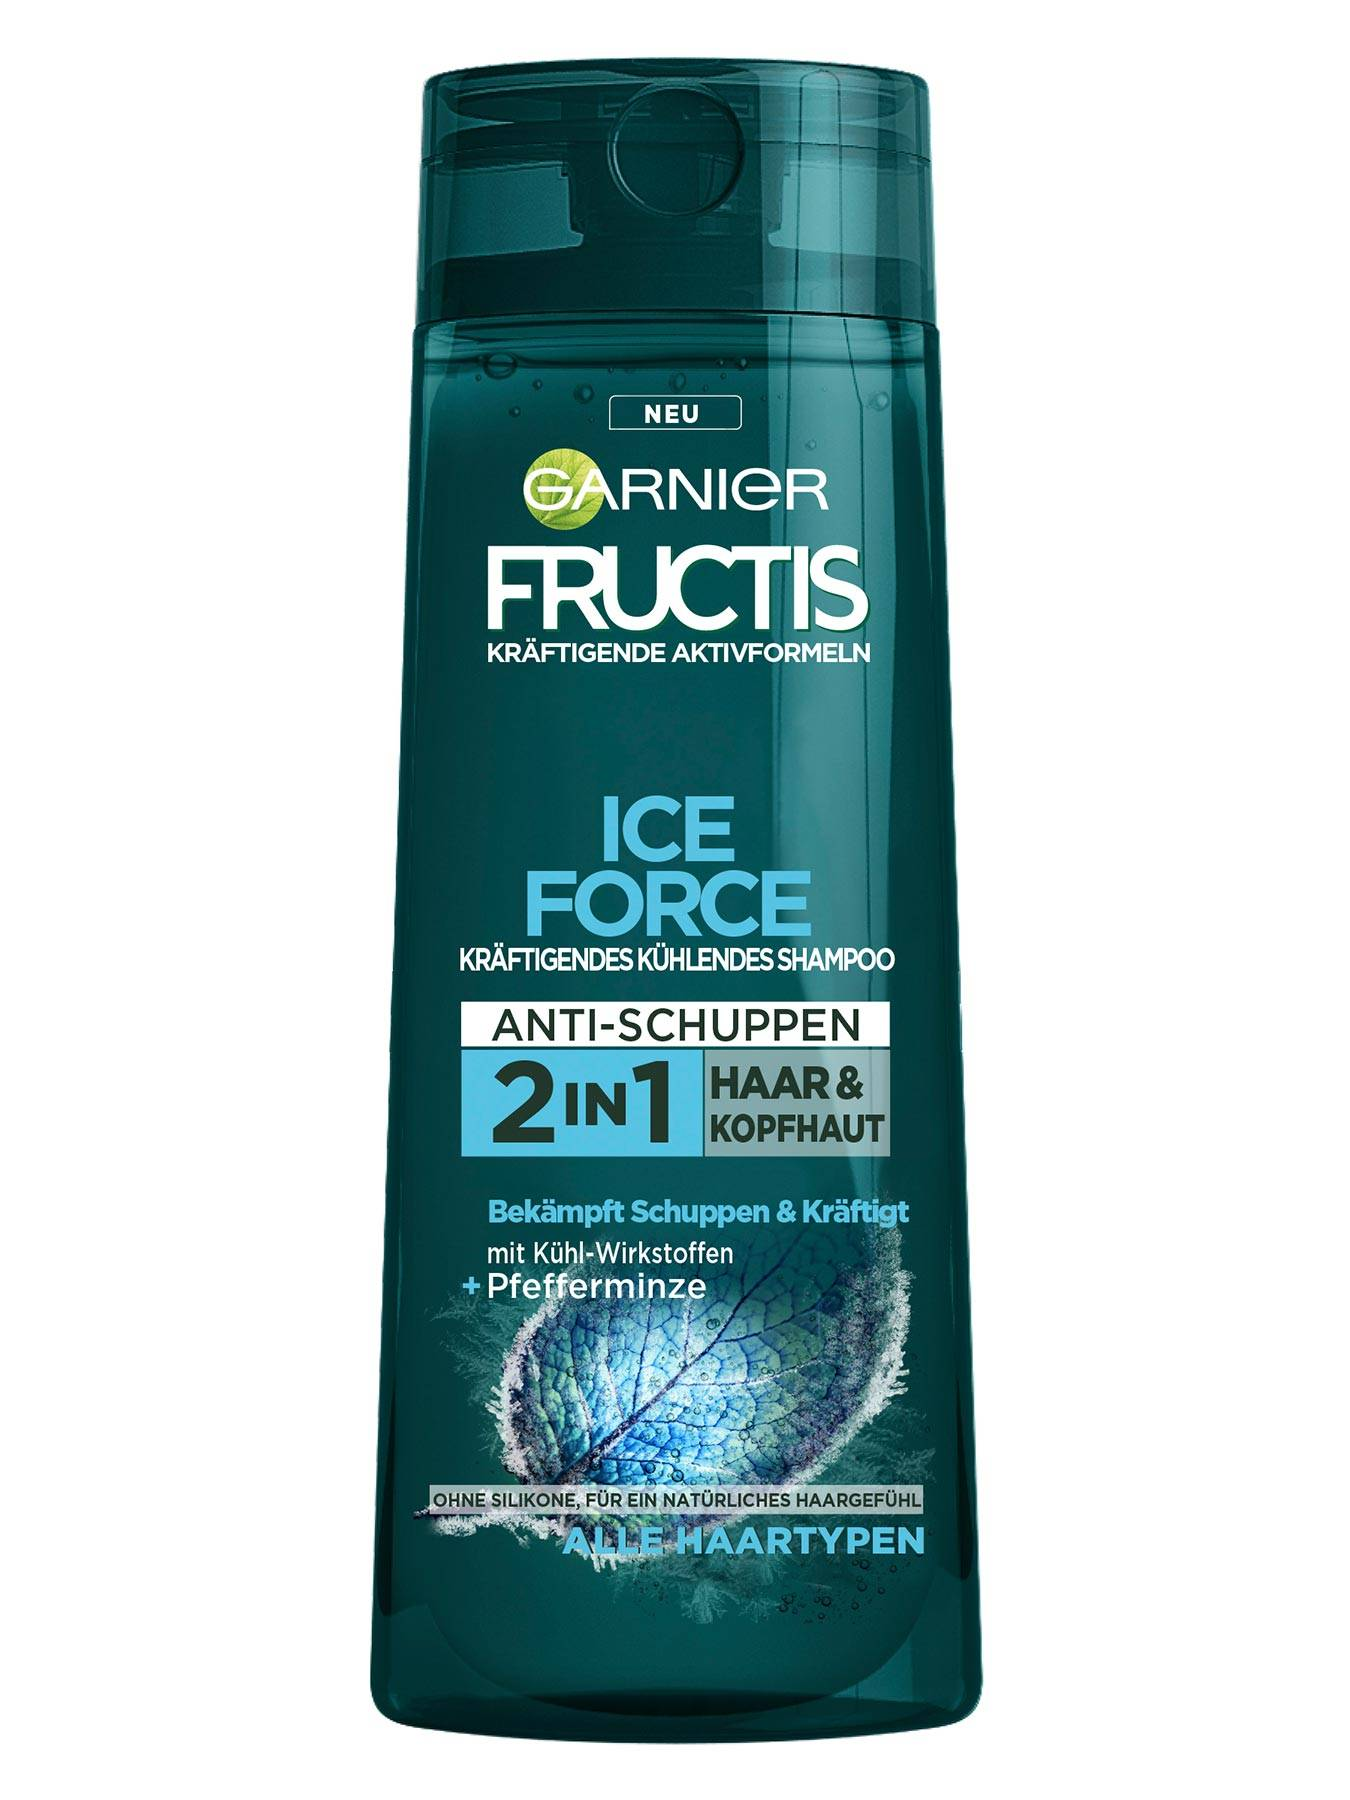 Kraeftigendes-Shampoo-Pfefferminze-Fructis-Ice-Force-250ml-Vorderseite-Garnier-Deutschland-gross